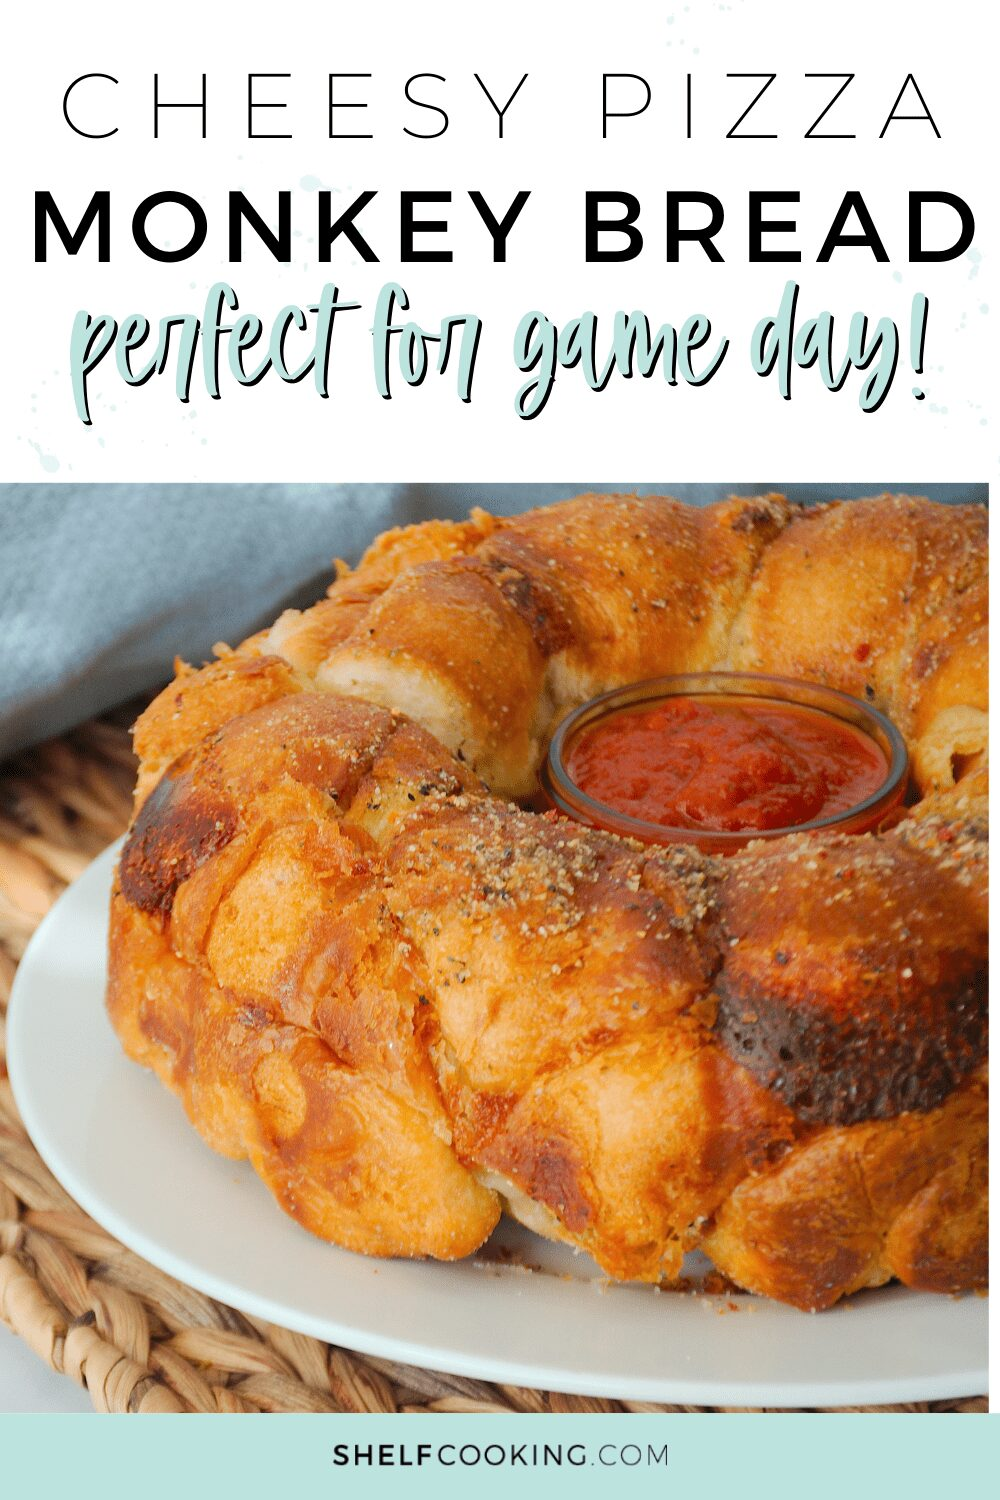 learn how to make pizza monkey bread, from Shelf Cooking